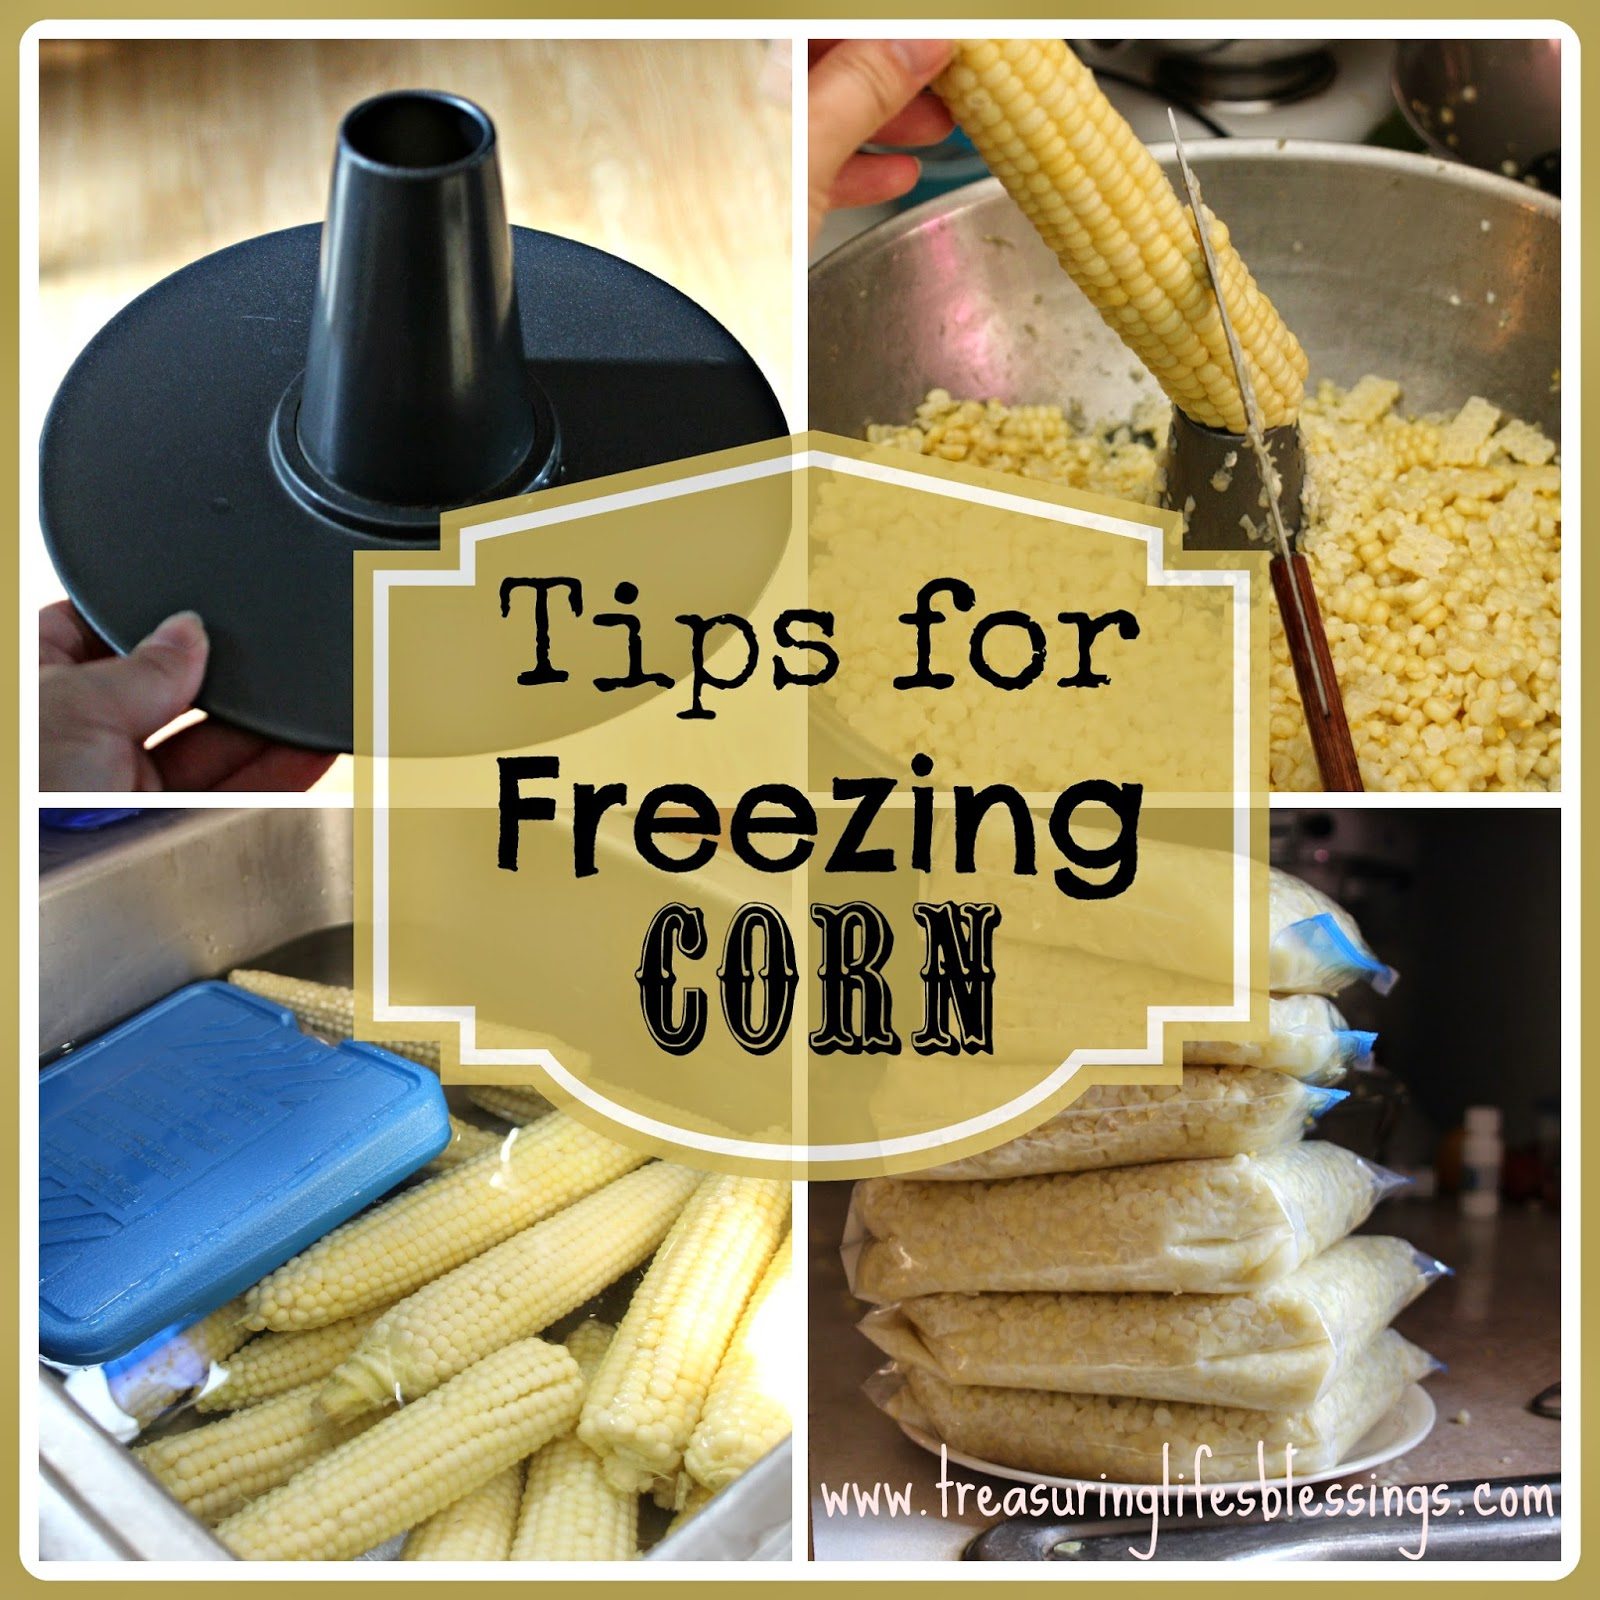 Tips For Freezing Corn